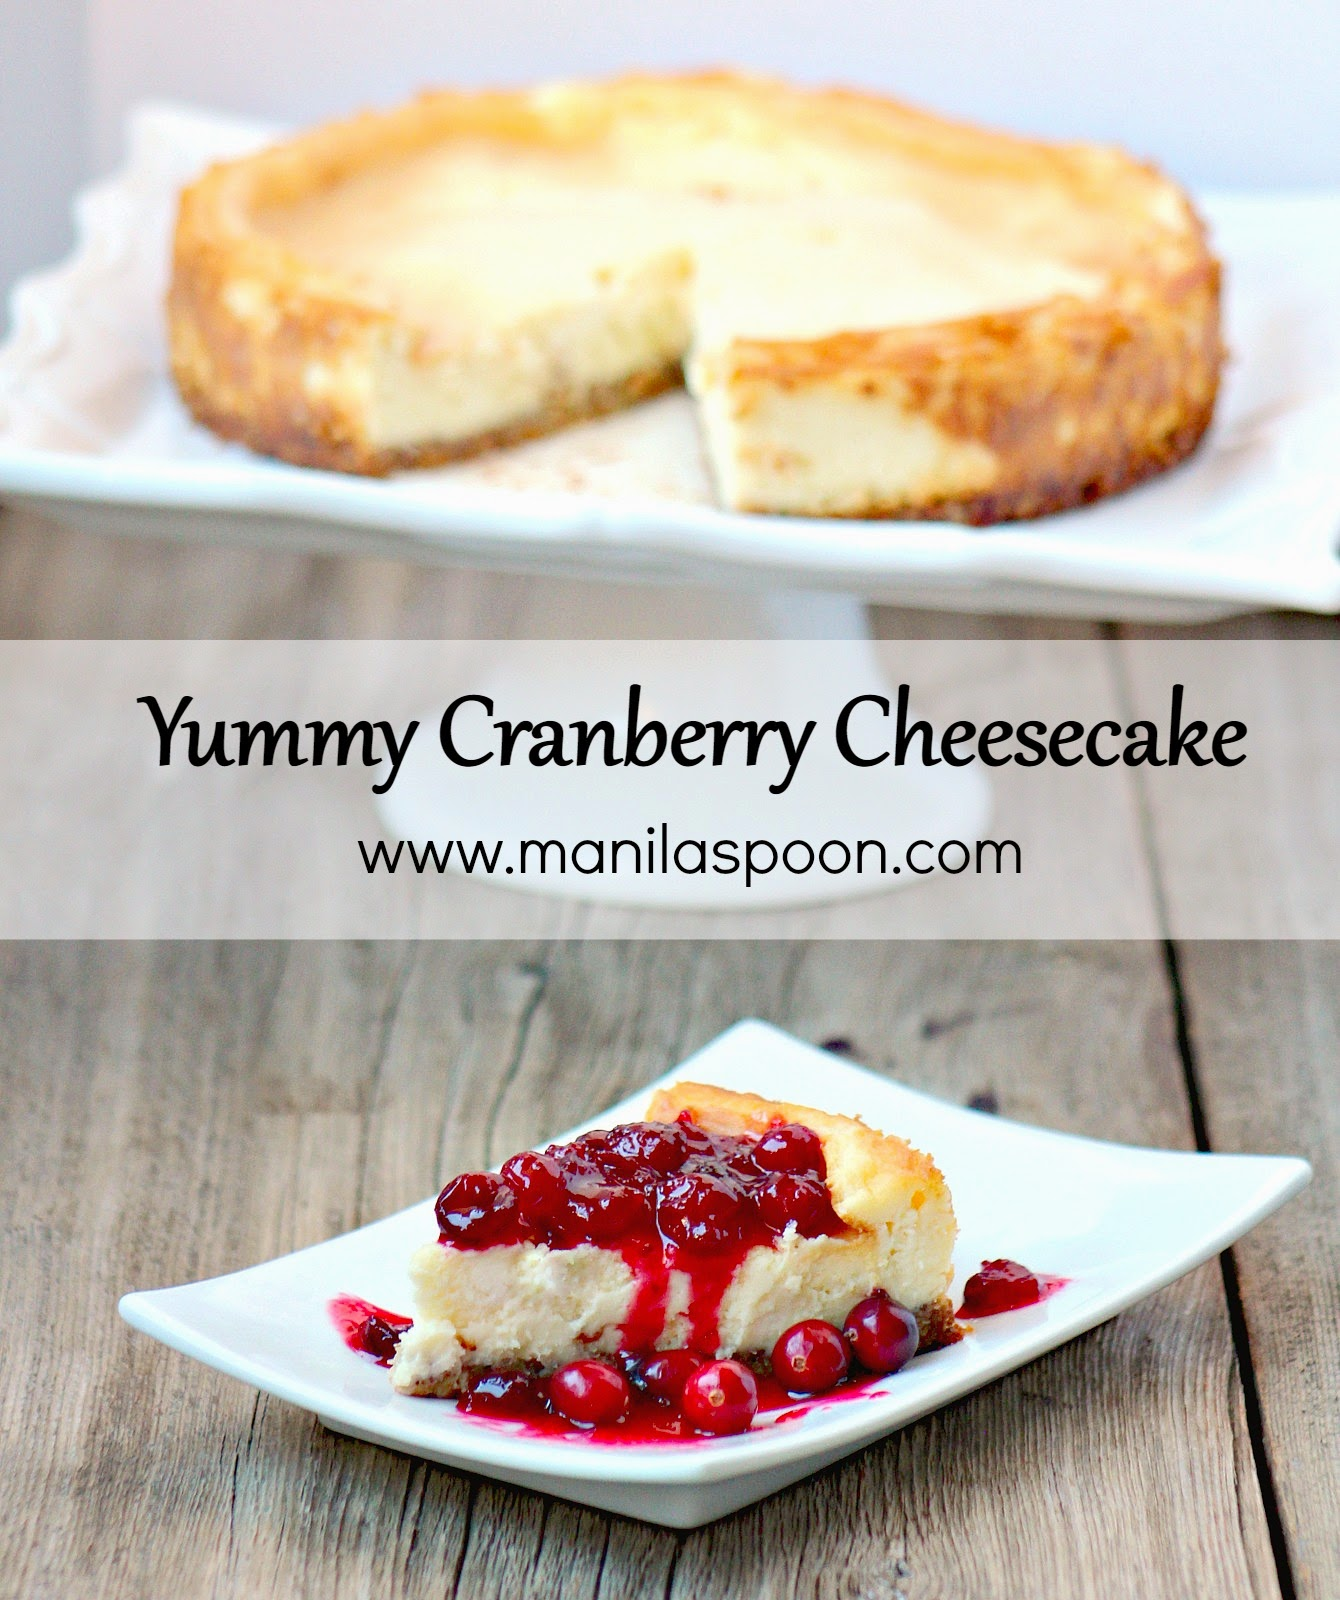 Use fresh or frozen cranberries to make this very creamy, sweet-tangy and deliciously good Yummy Cranberry Cheesecake that will make your holiday complete. Perfect for Christmas, New Year or any holiday! | manilaspoon.com